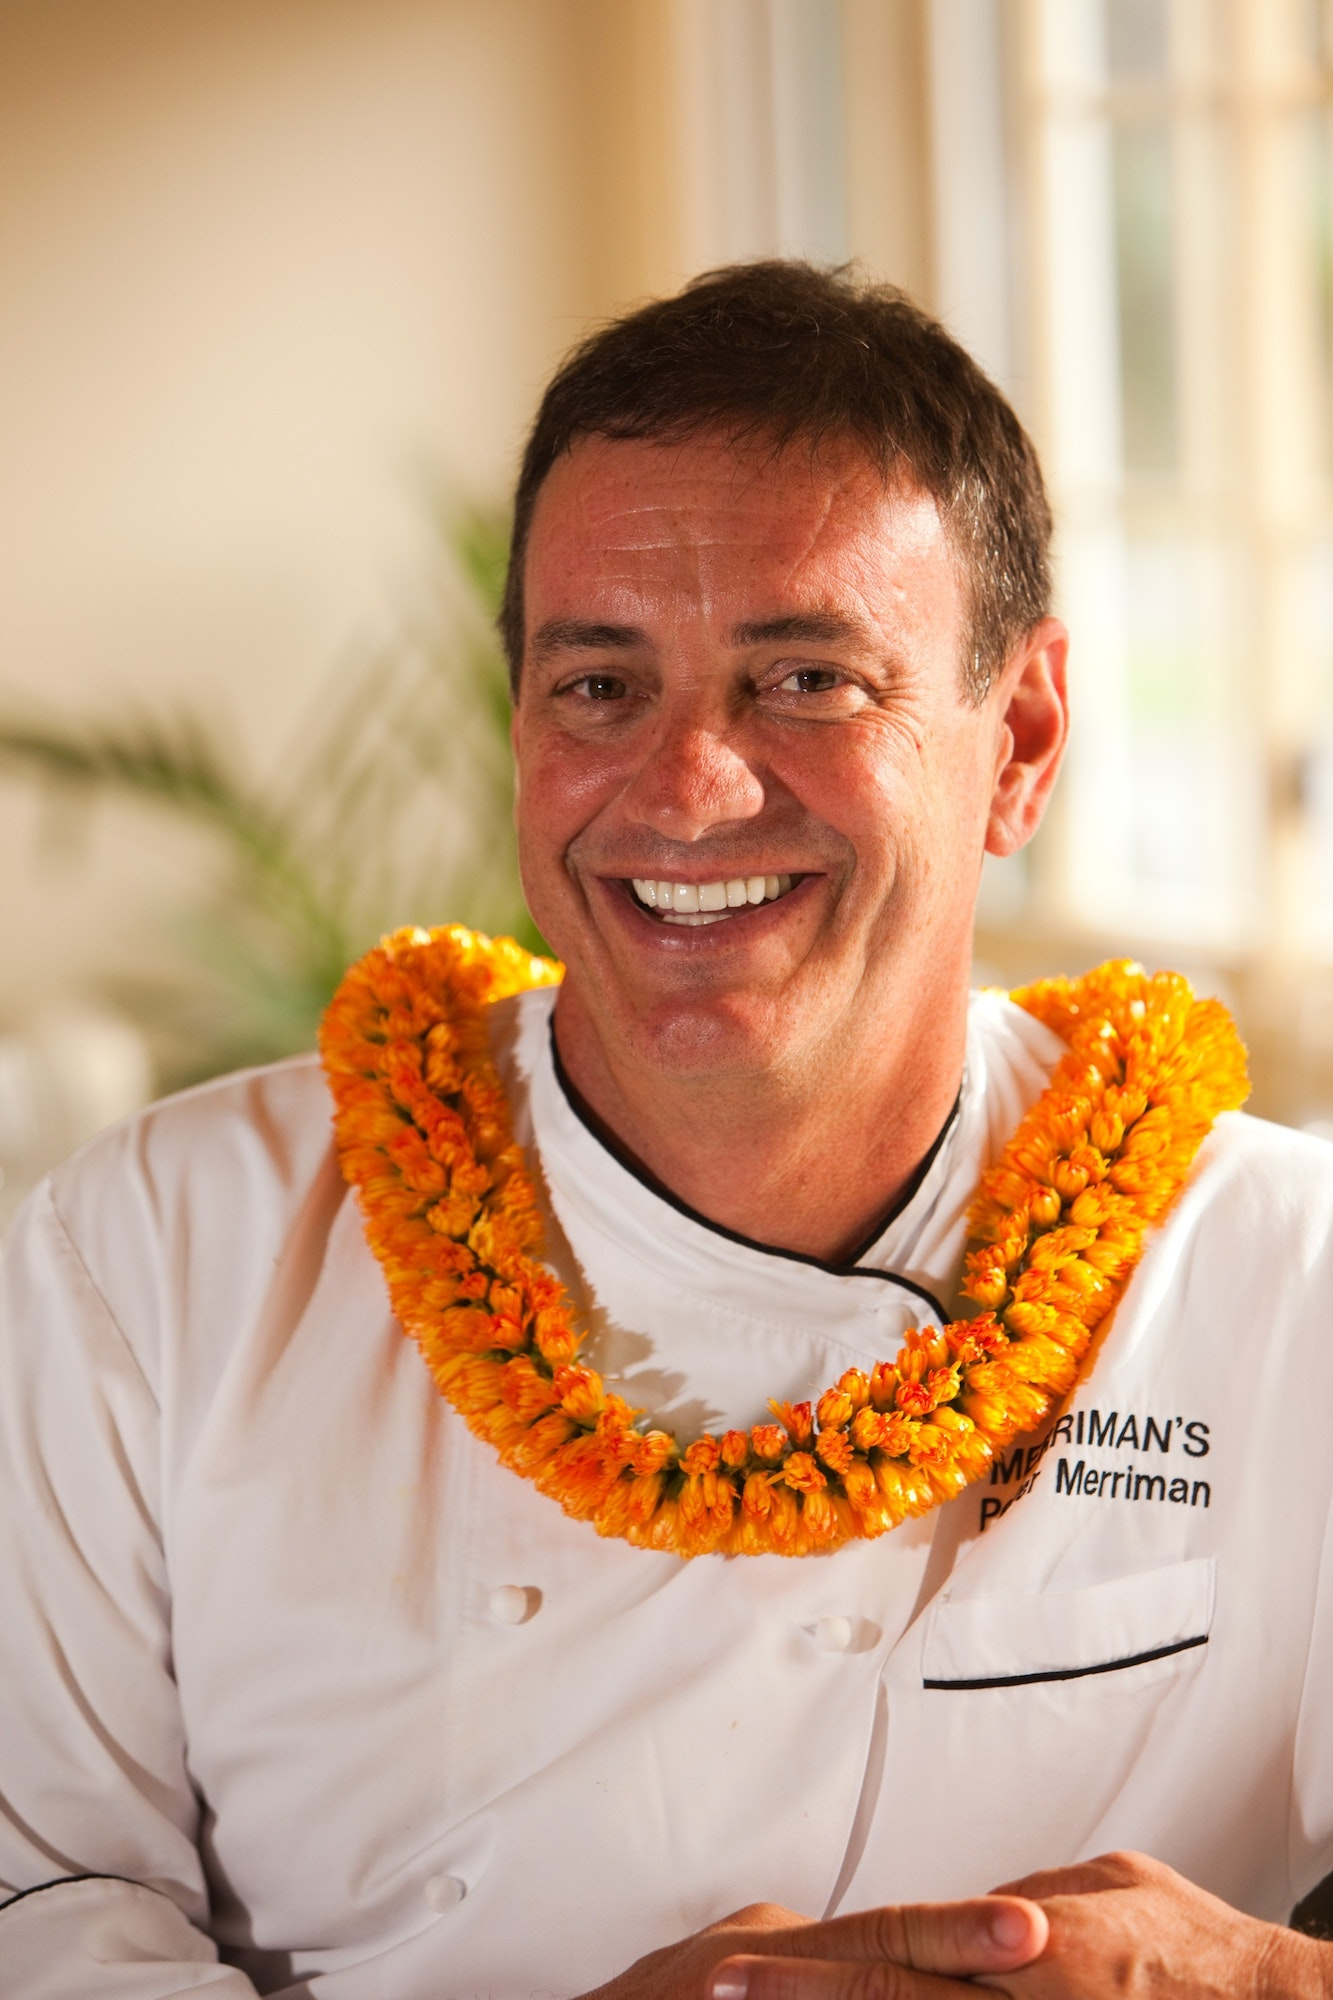 Chef Peter Merriman, pioneer of Hawaii Regional Cuisine